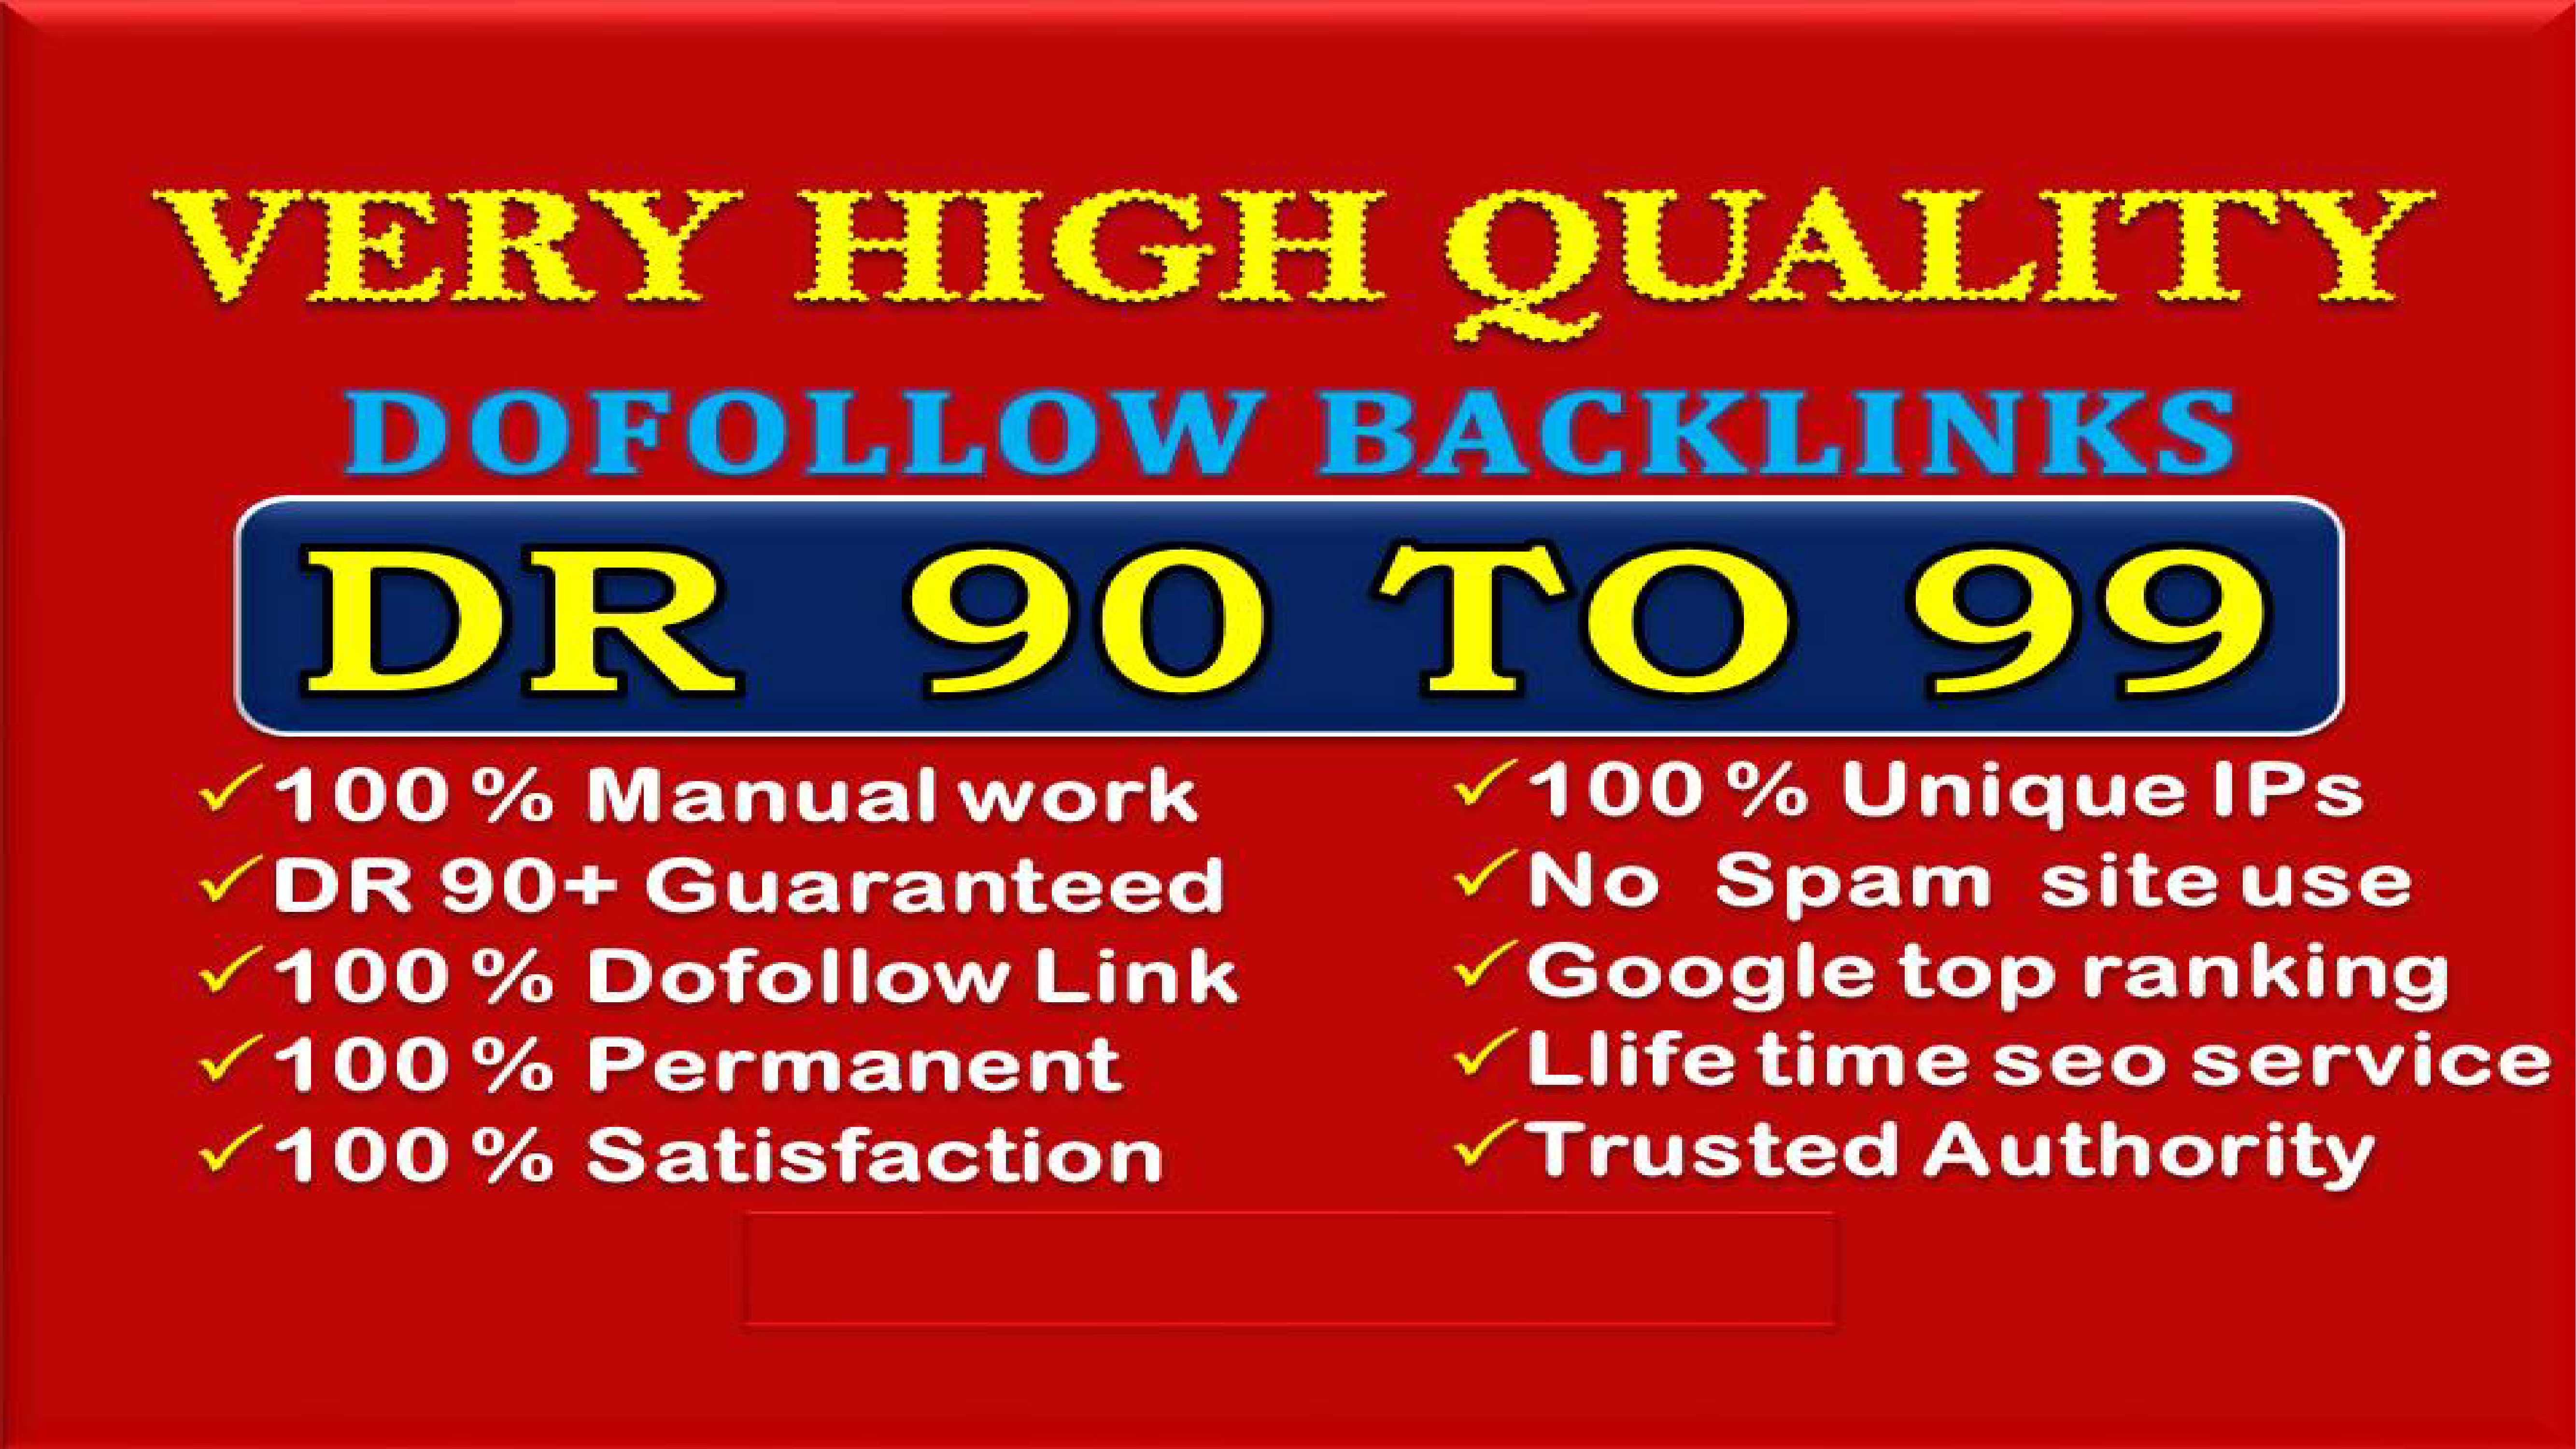 I will build DR 90 to 99 high quality dofollow backlinks link building for seo service